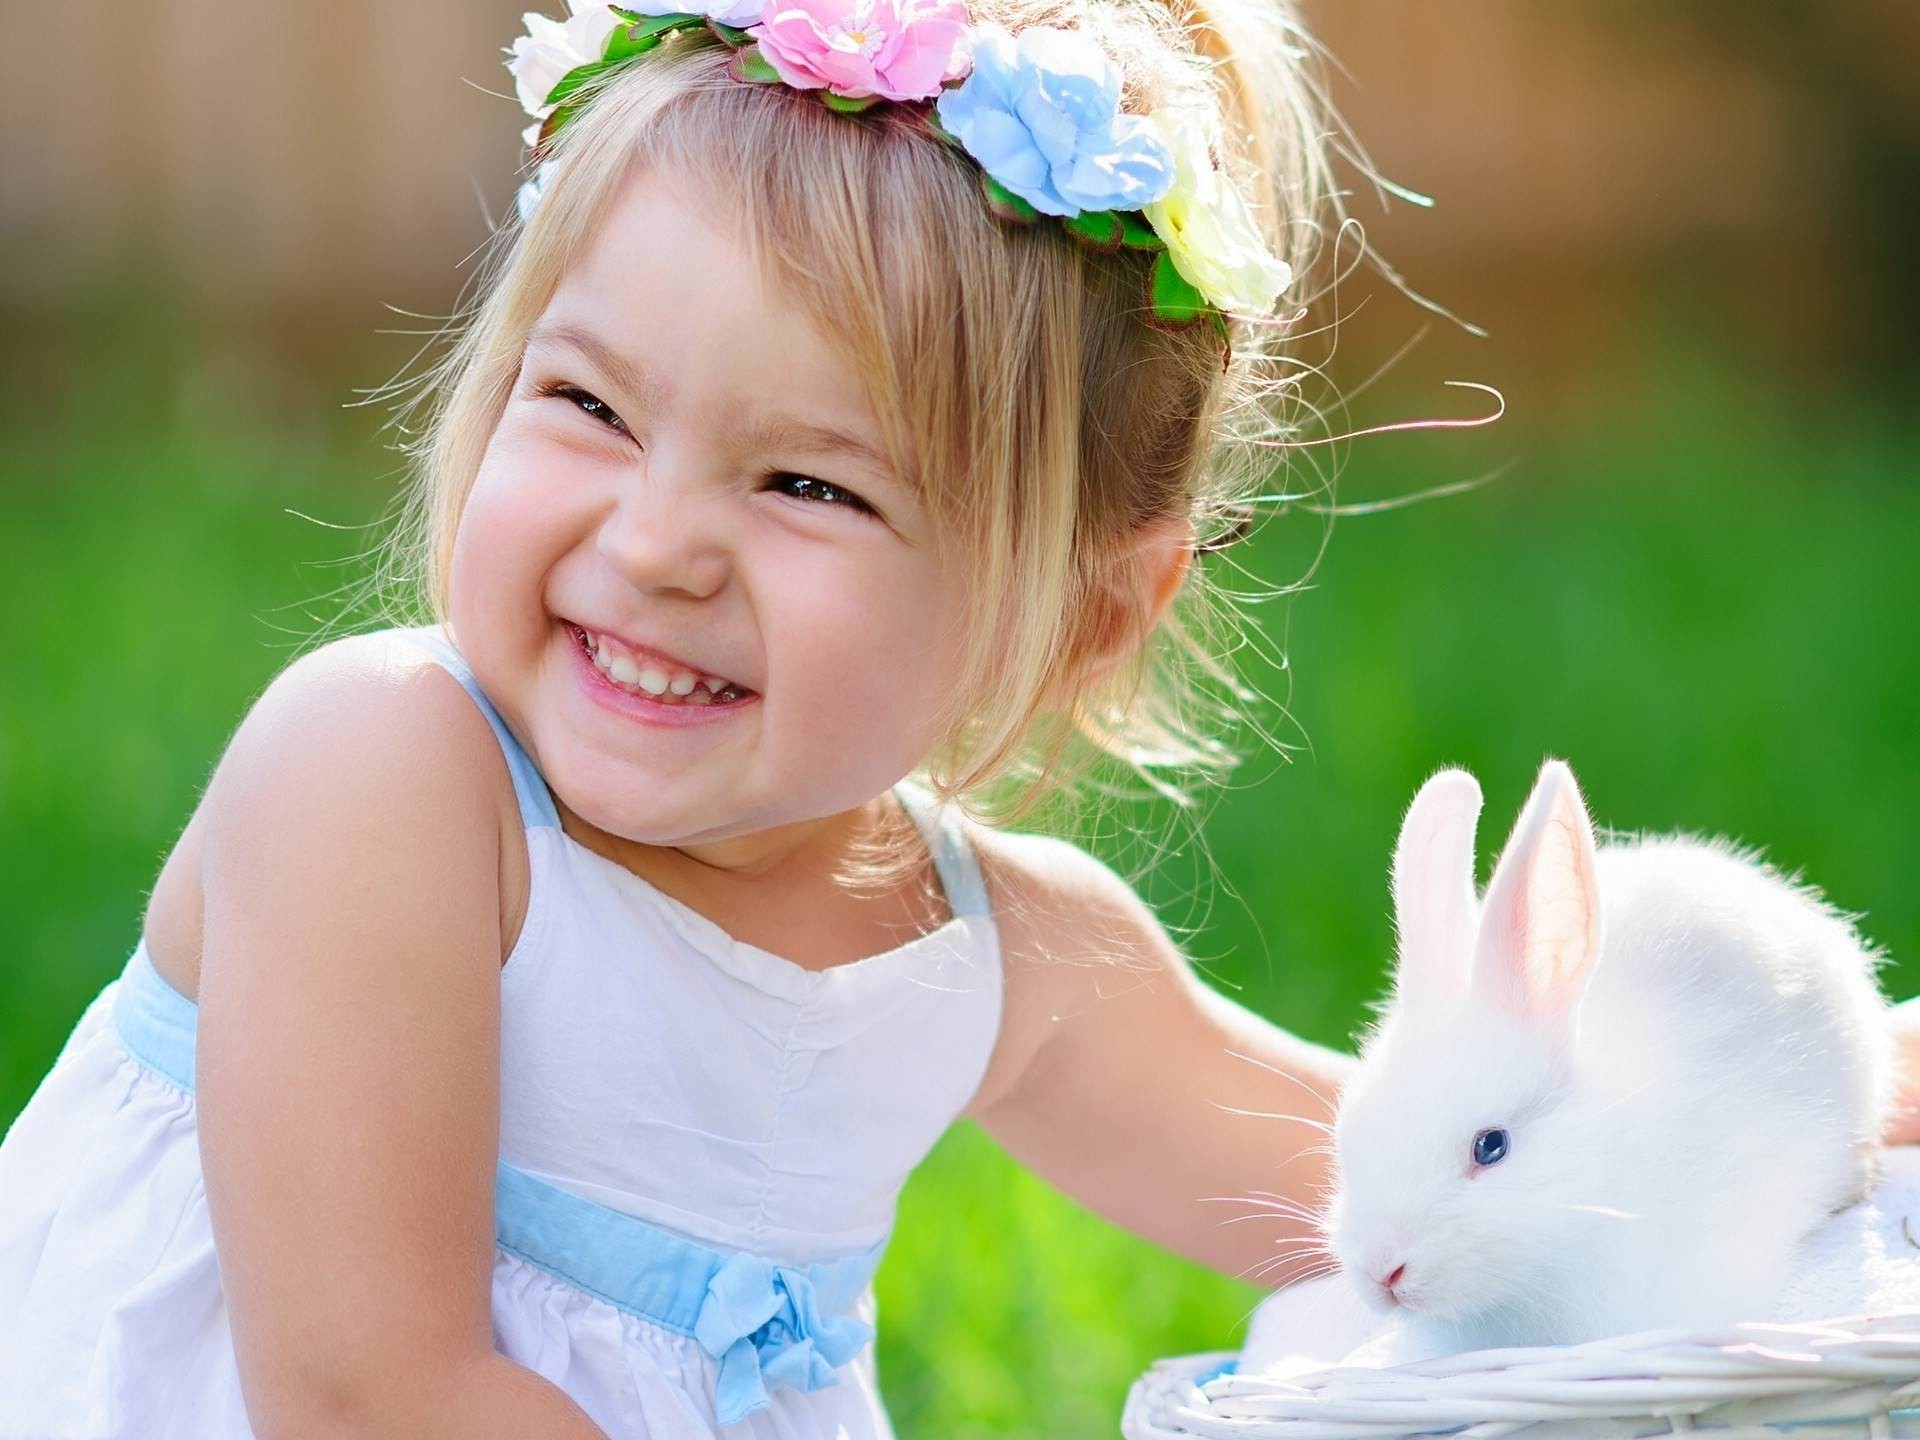 Smiling Cute Babies Wallpaper (62+ images)